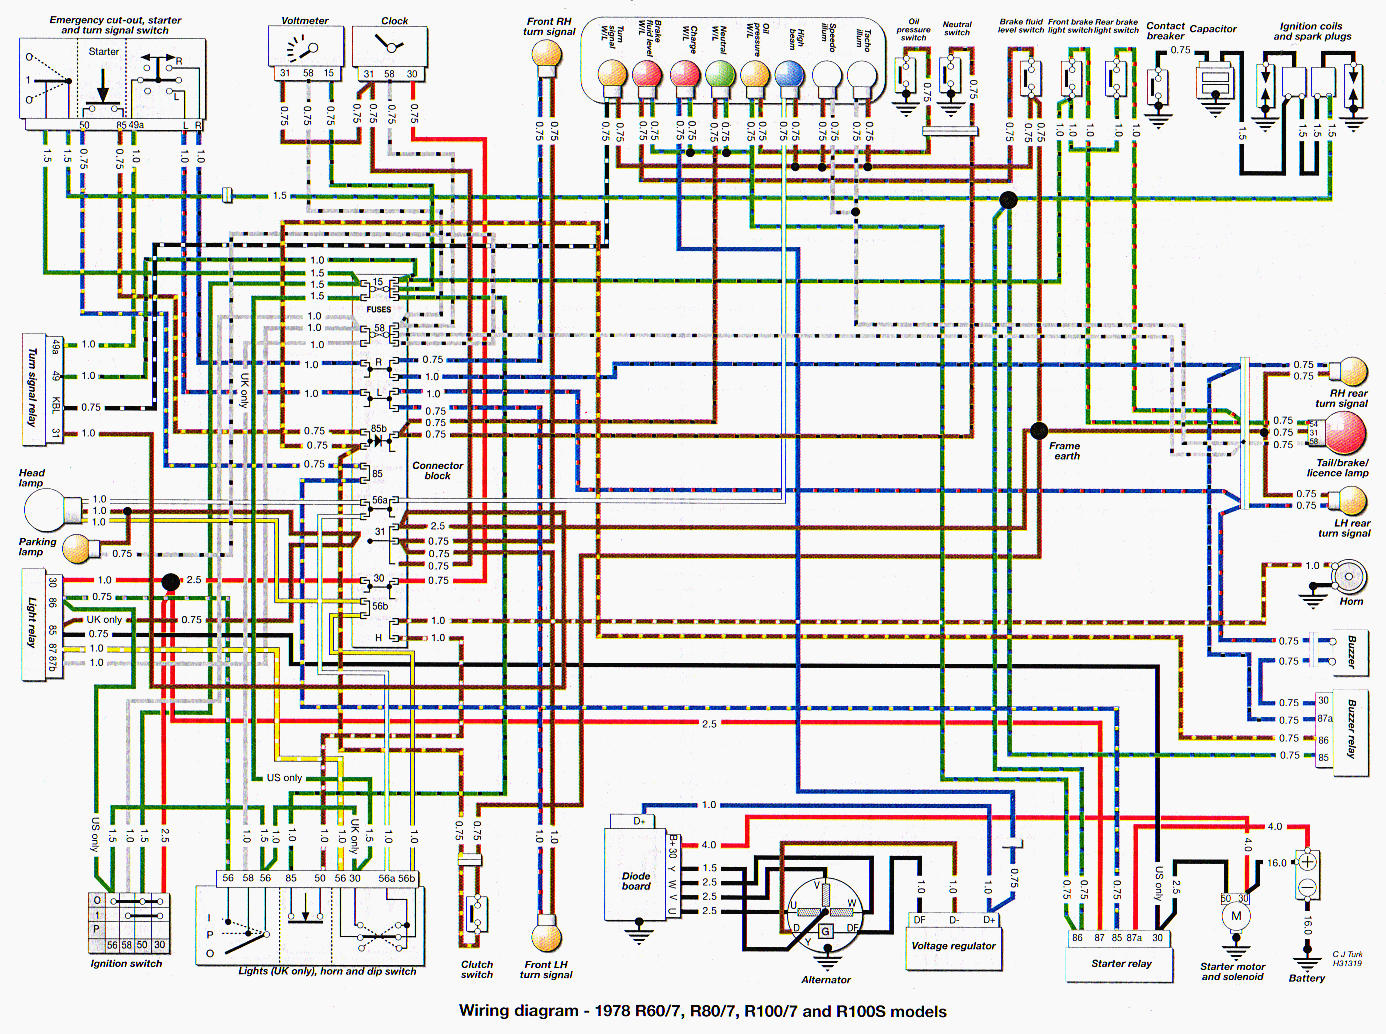 hight resolution of f800 wiring diagram wiring diagram advancef800 wiring diagram wiring diagram data today 1996 ford f800 wiring